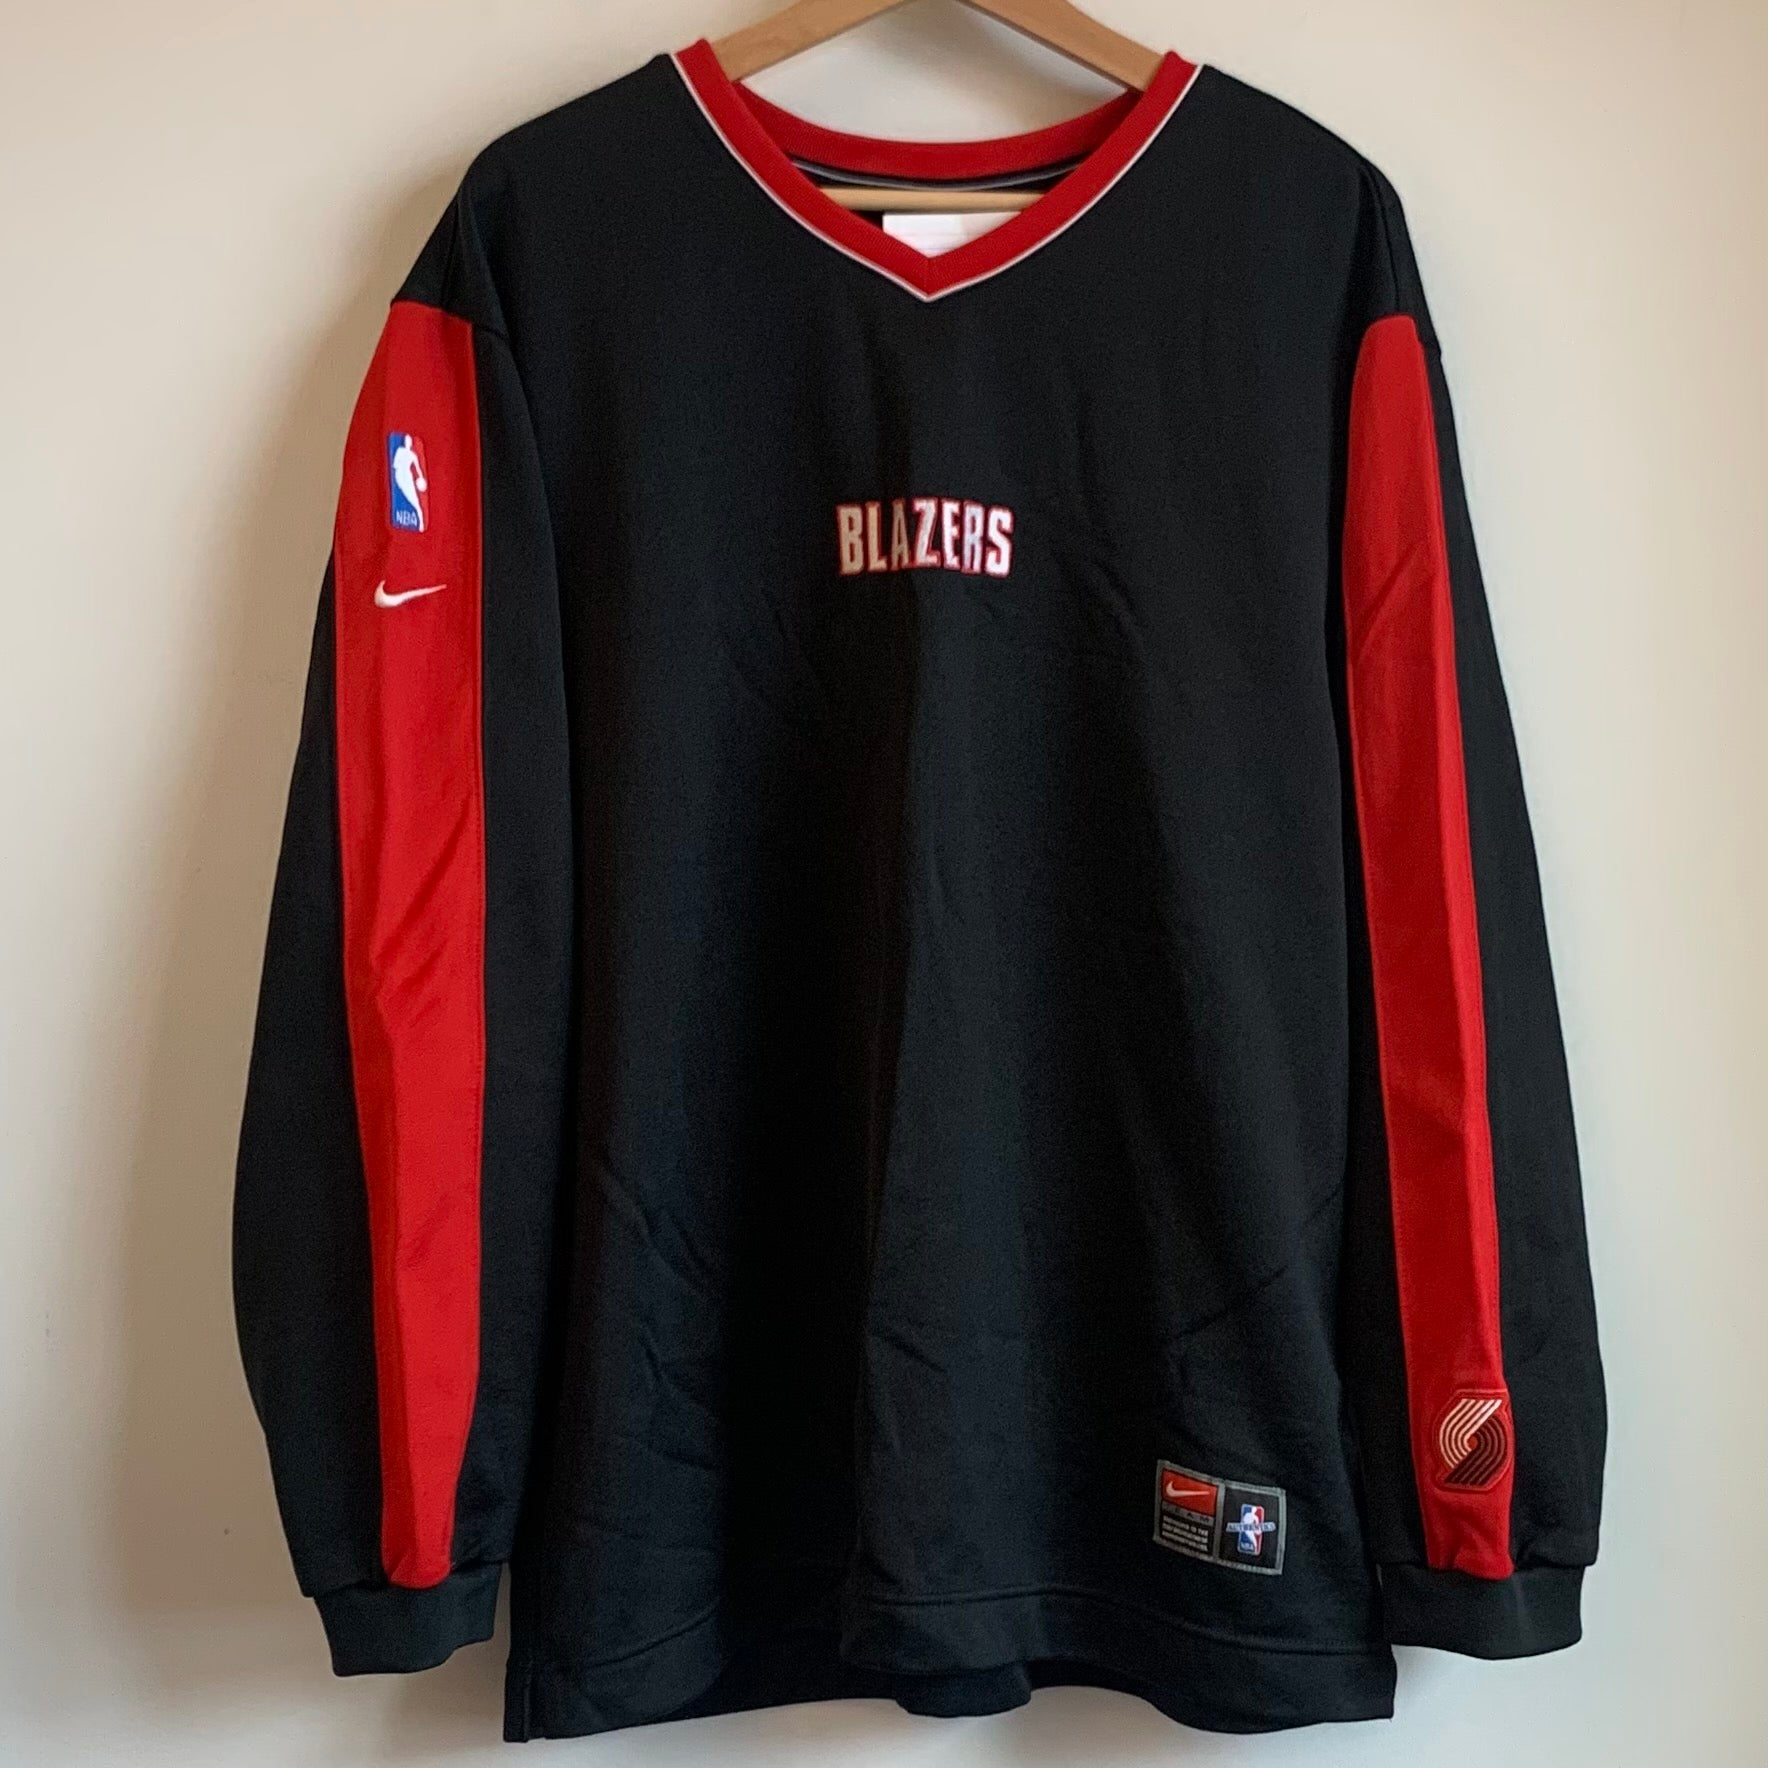 Nike Portland Trail Blazers Warm Up Sweater